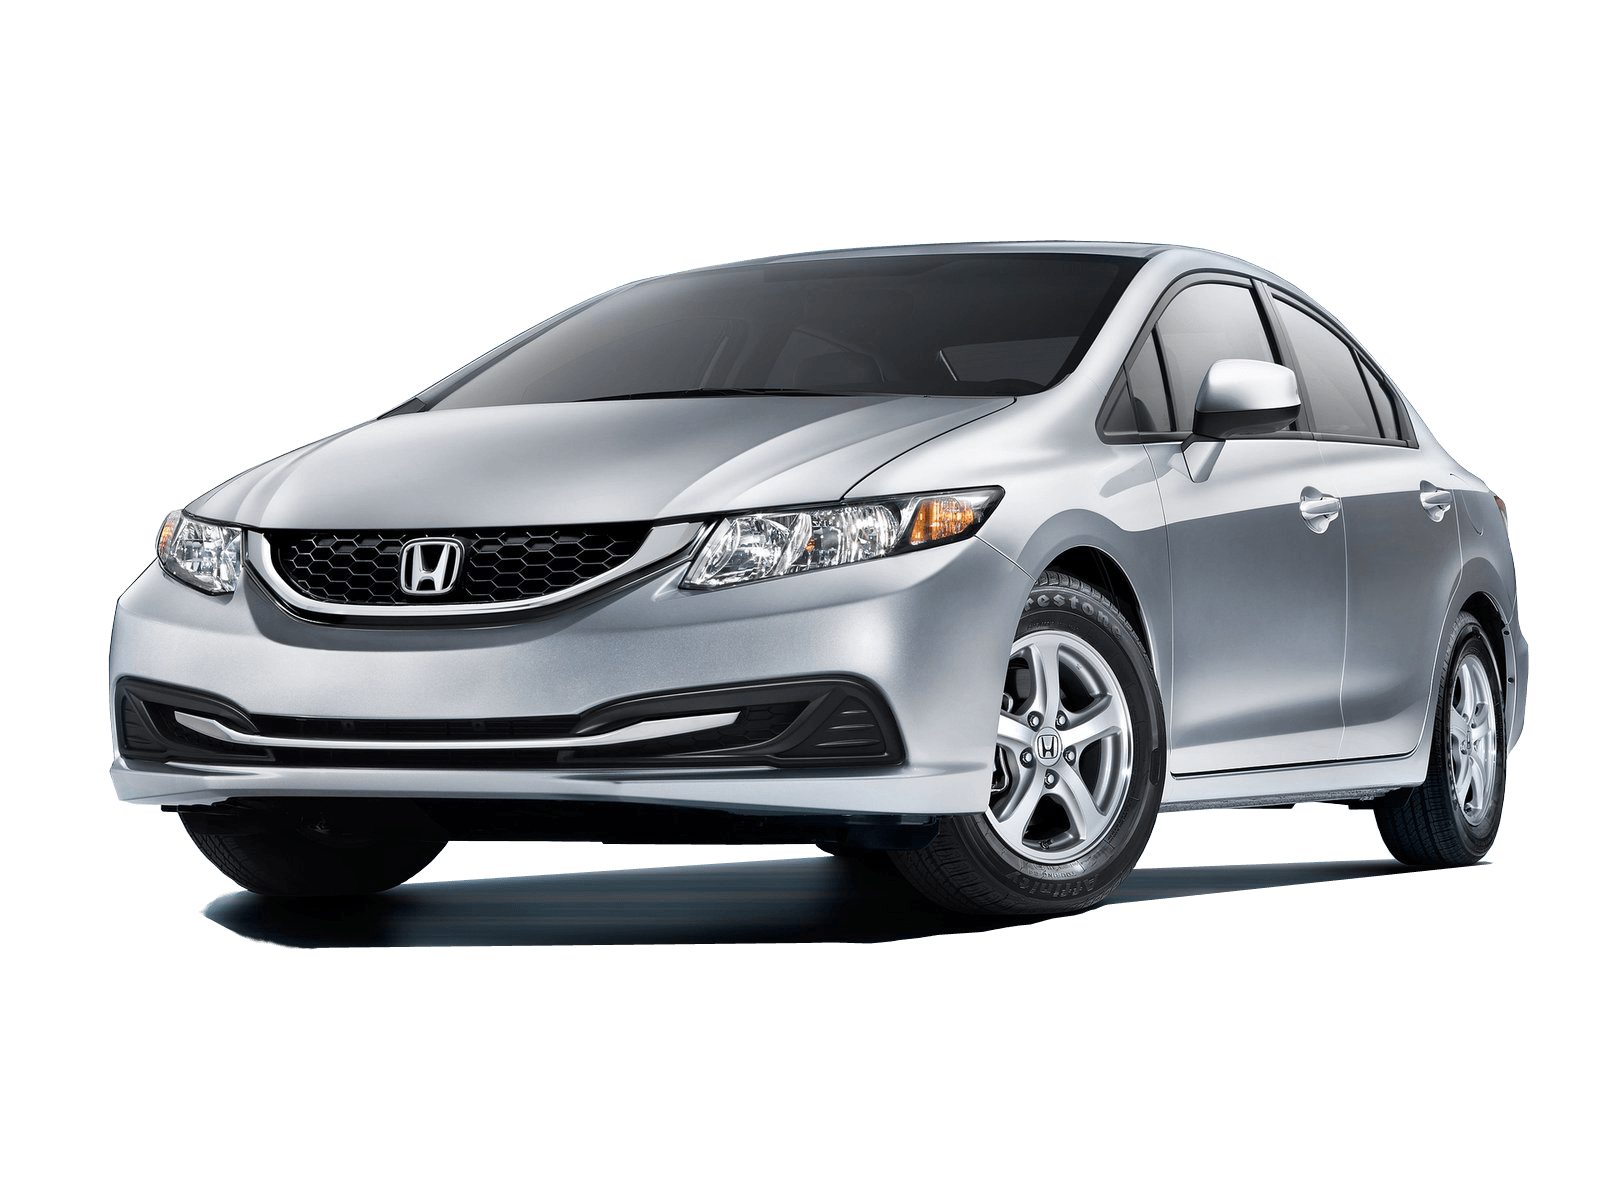 Auto repair st charles il honda auto repair for Honda car repair